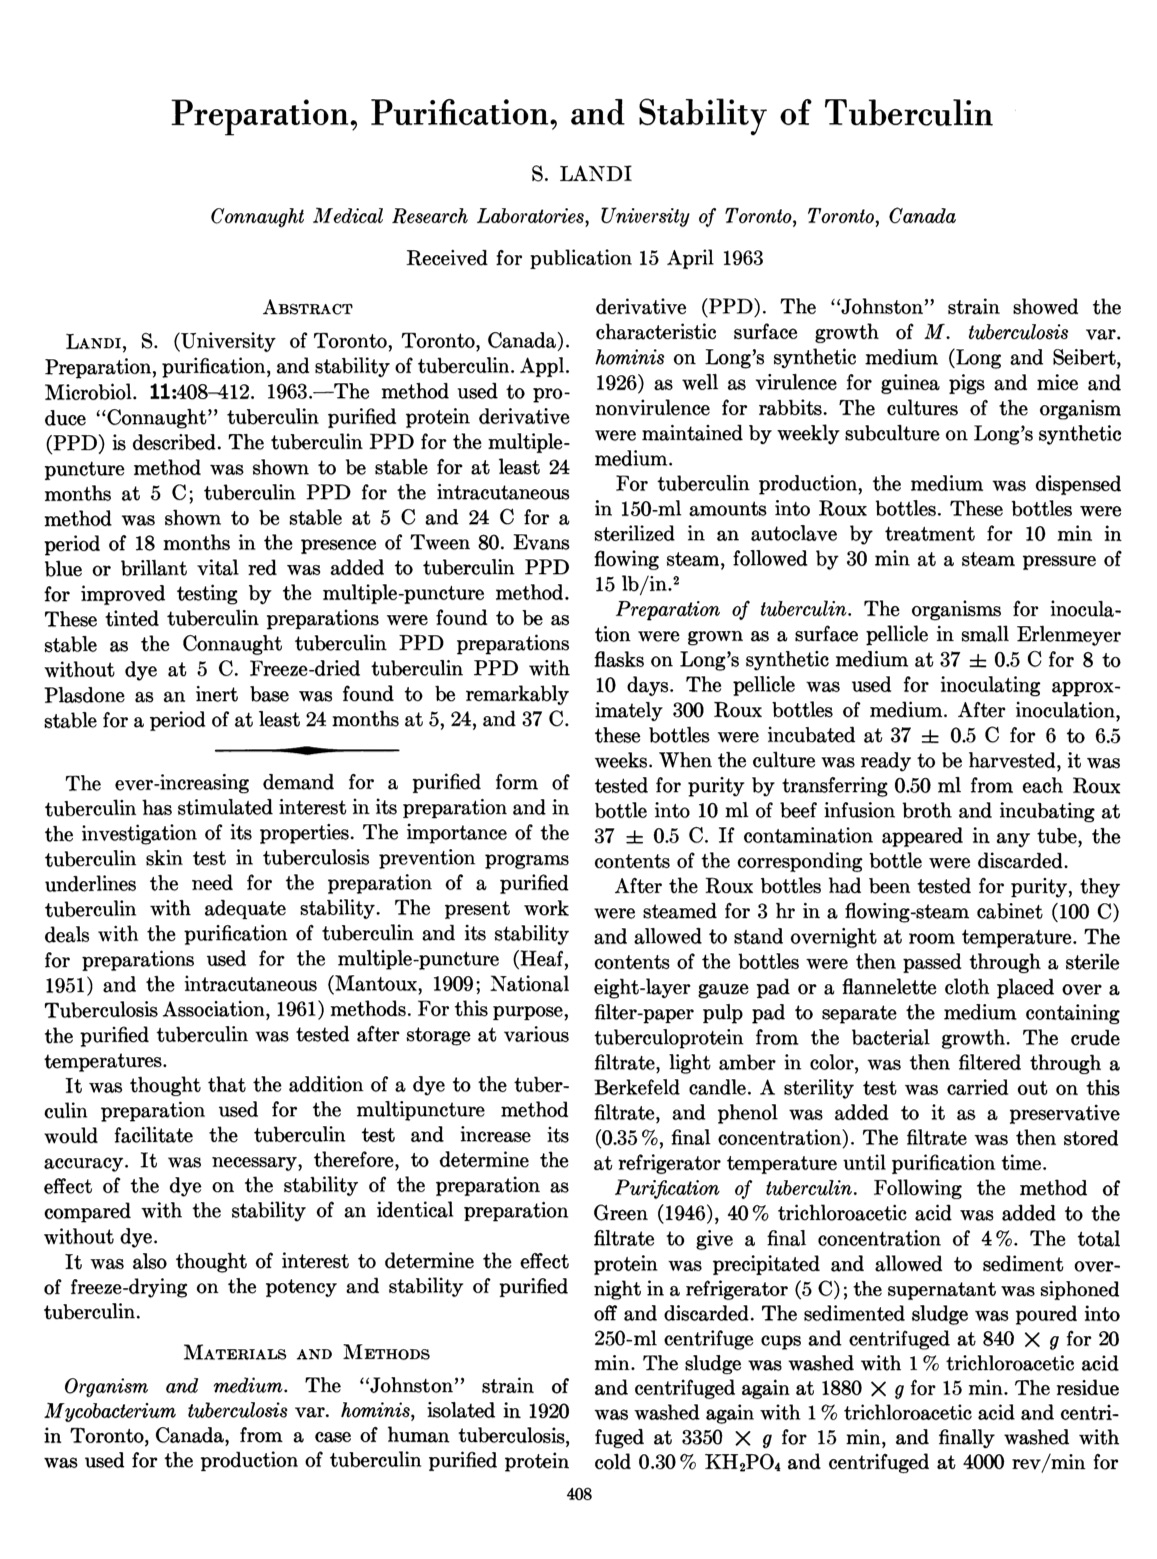 First page of Dr. Silvio Landi's seminal article on tuberculin preparation, purification and stability, published in the September 1963 issue of Applied Microbiology.